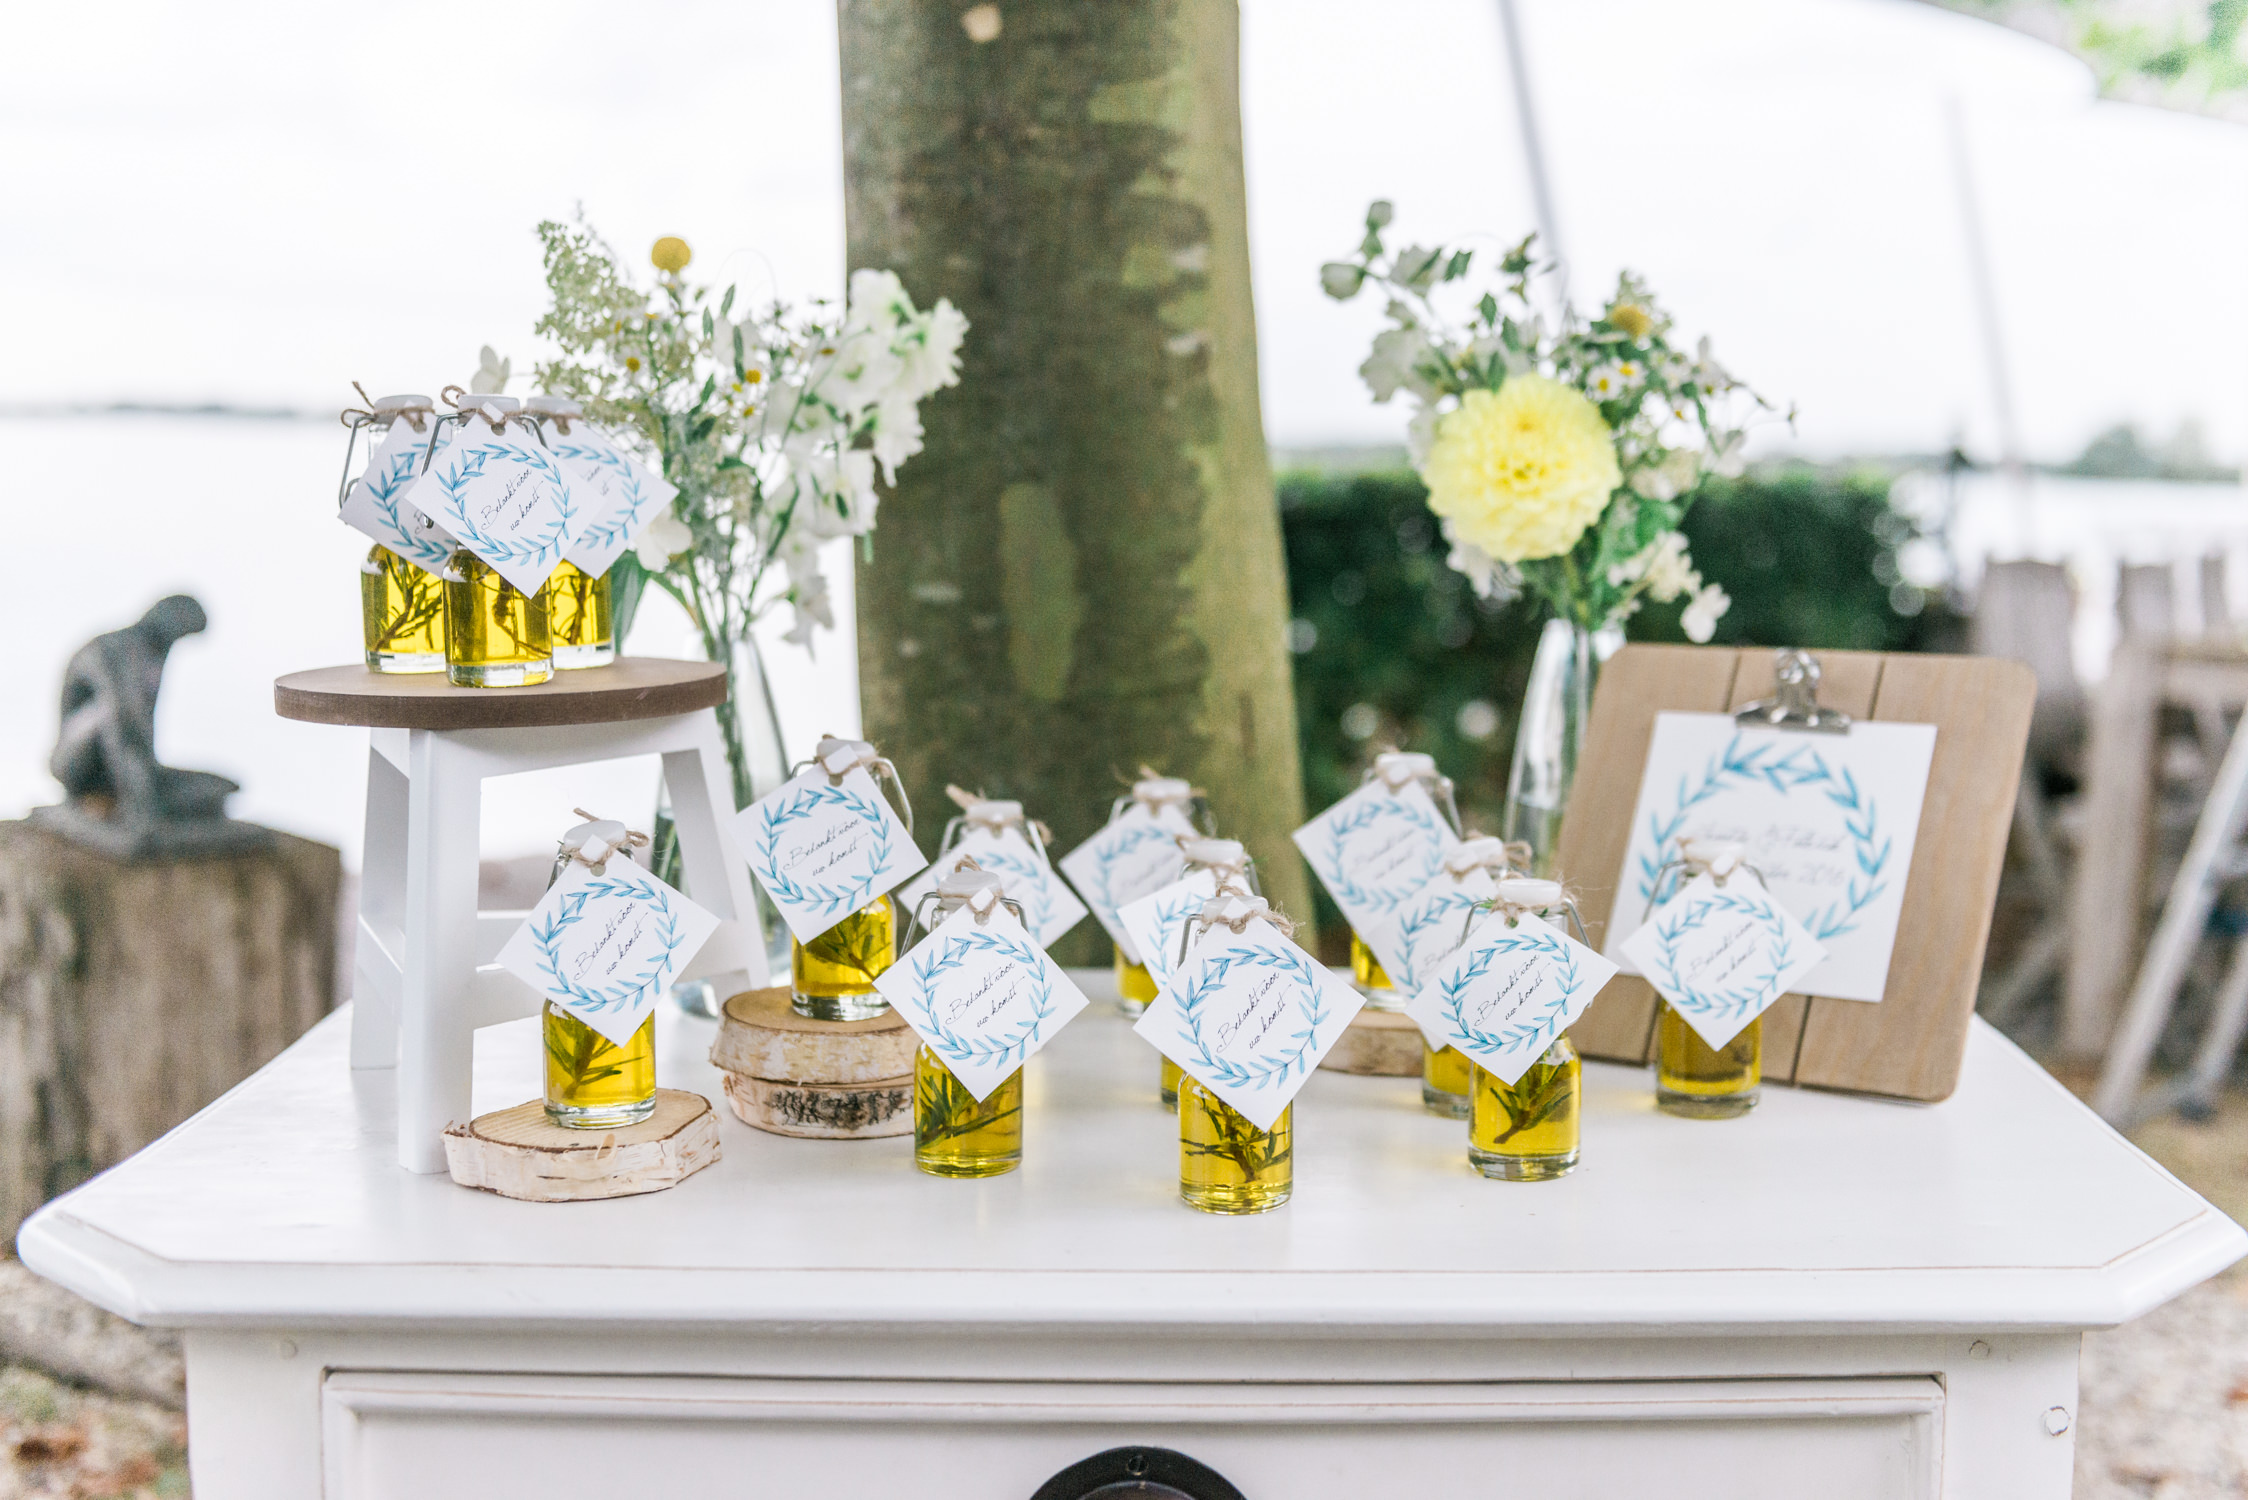 Olive oil bottles used as a giveaway at a destination wedding in Greece